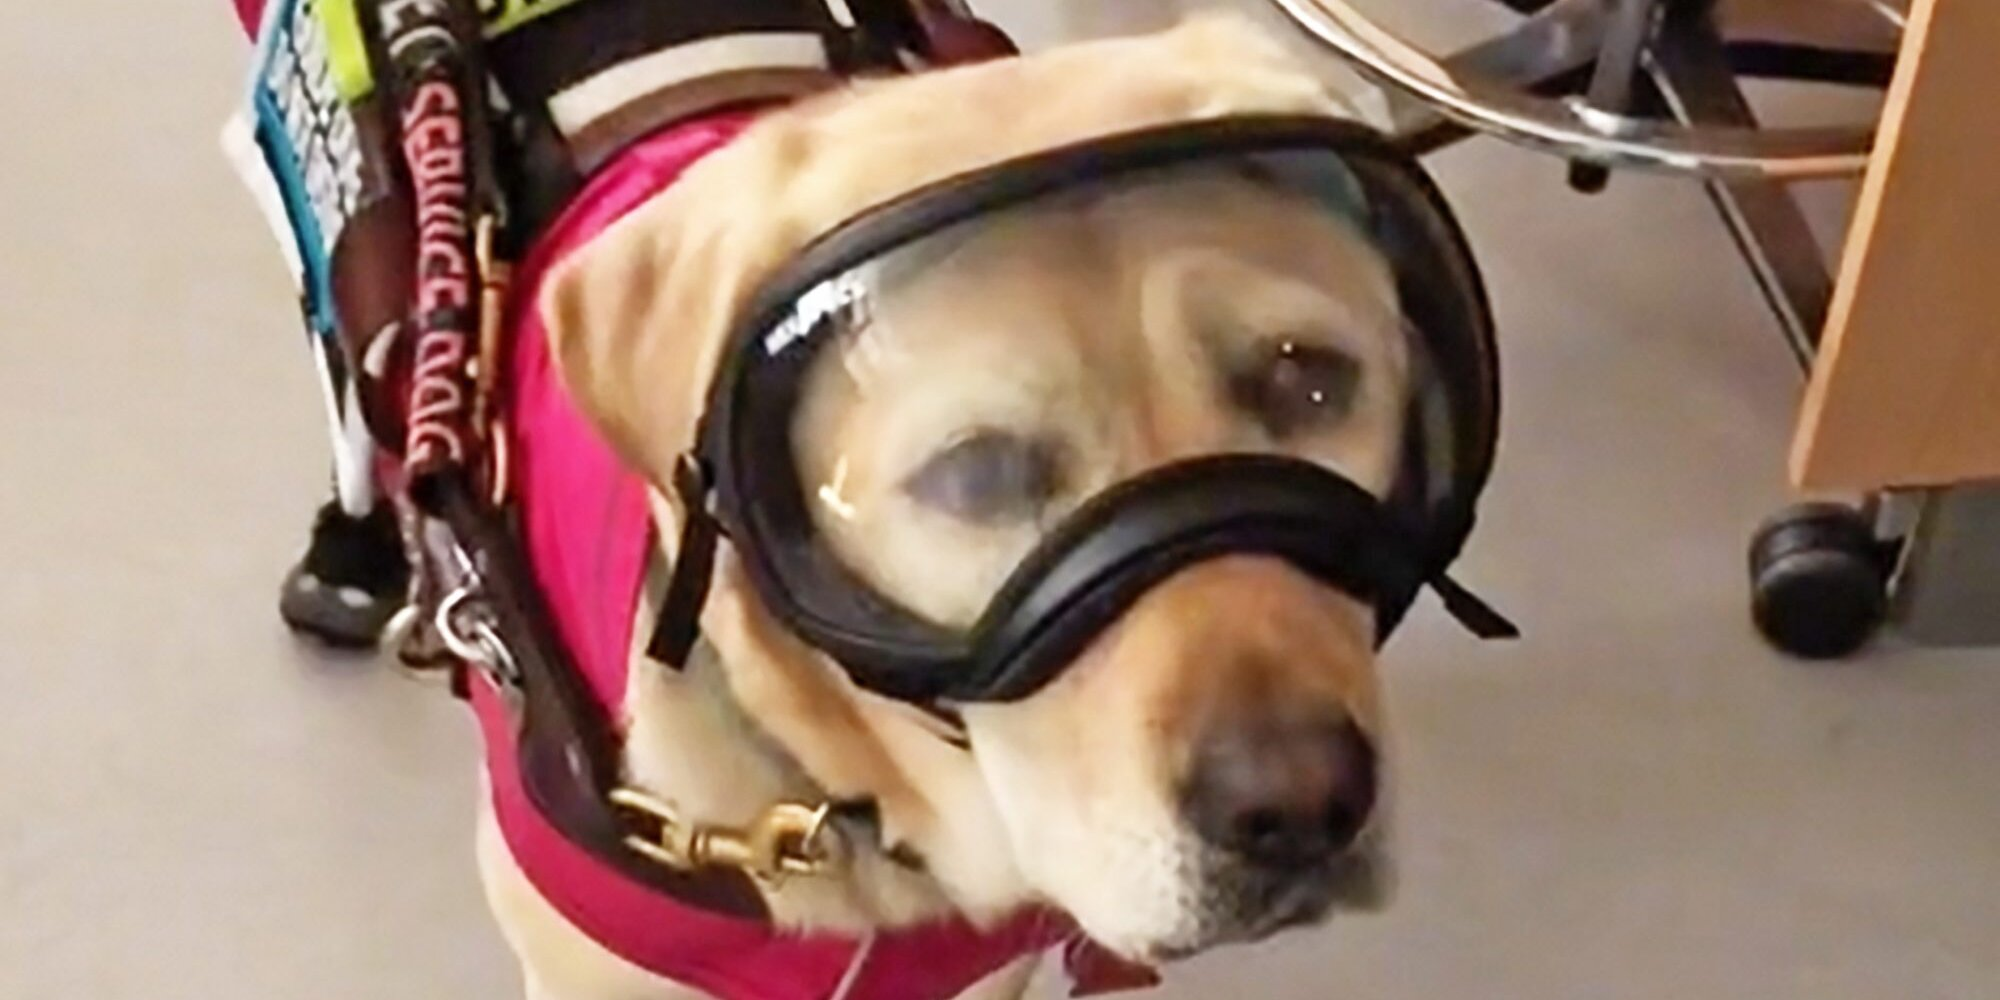 Meet O'Hara the Guide Dog, a Viral TikTok Star and 'the Goodest Girl in STEM'